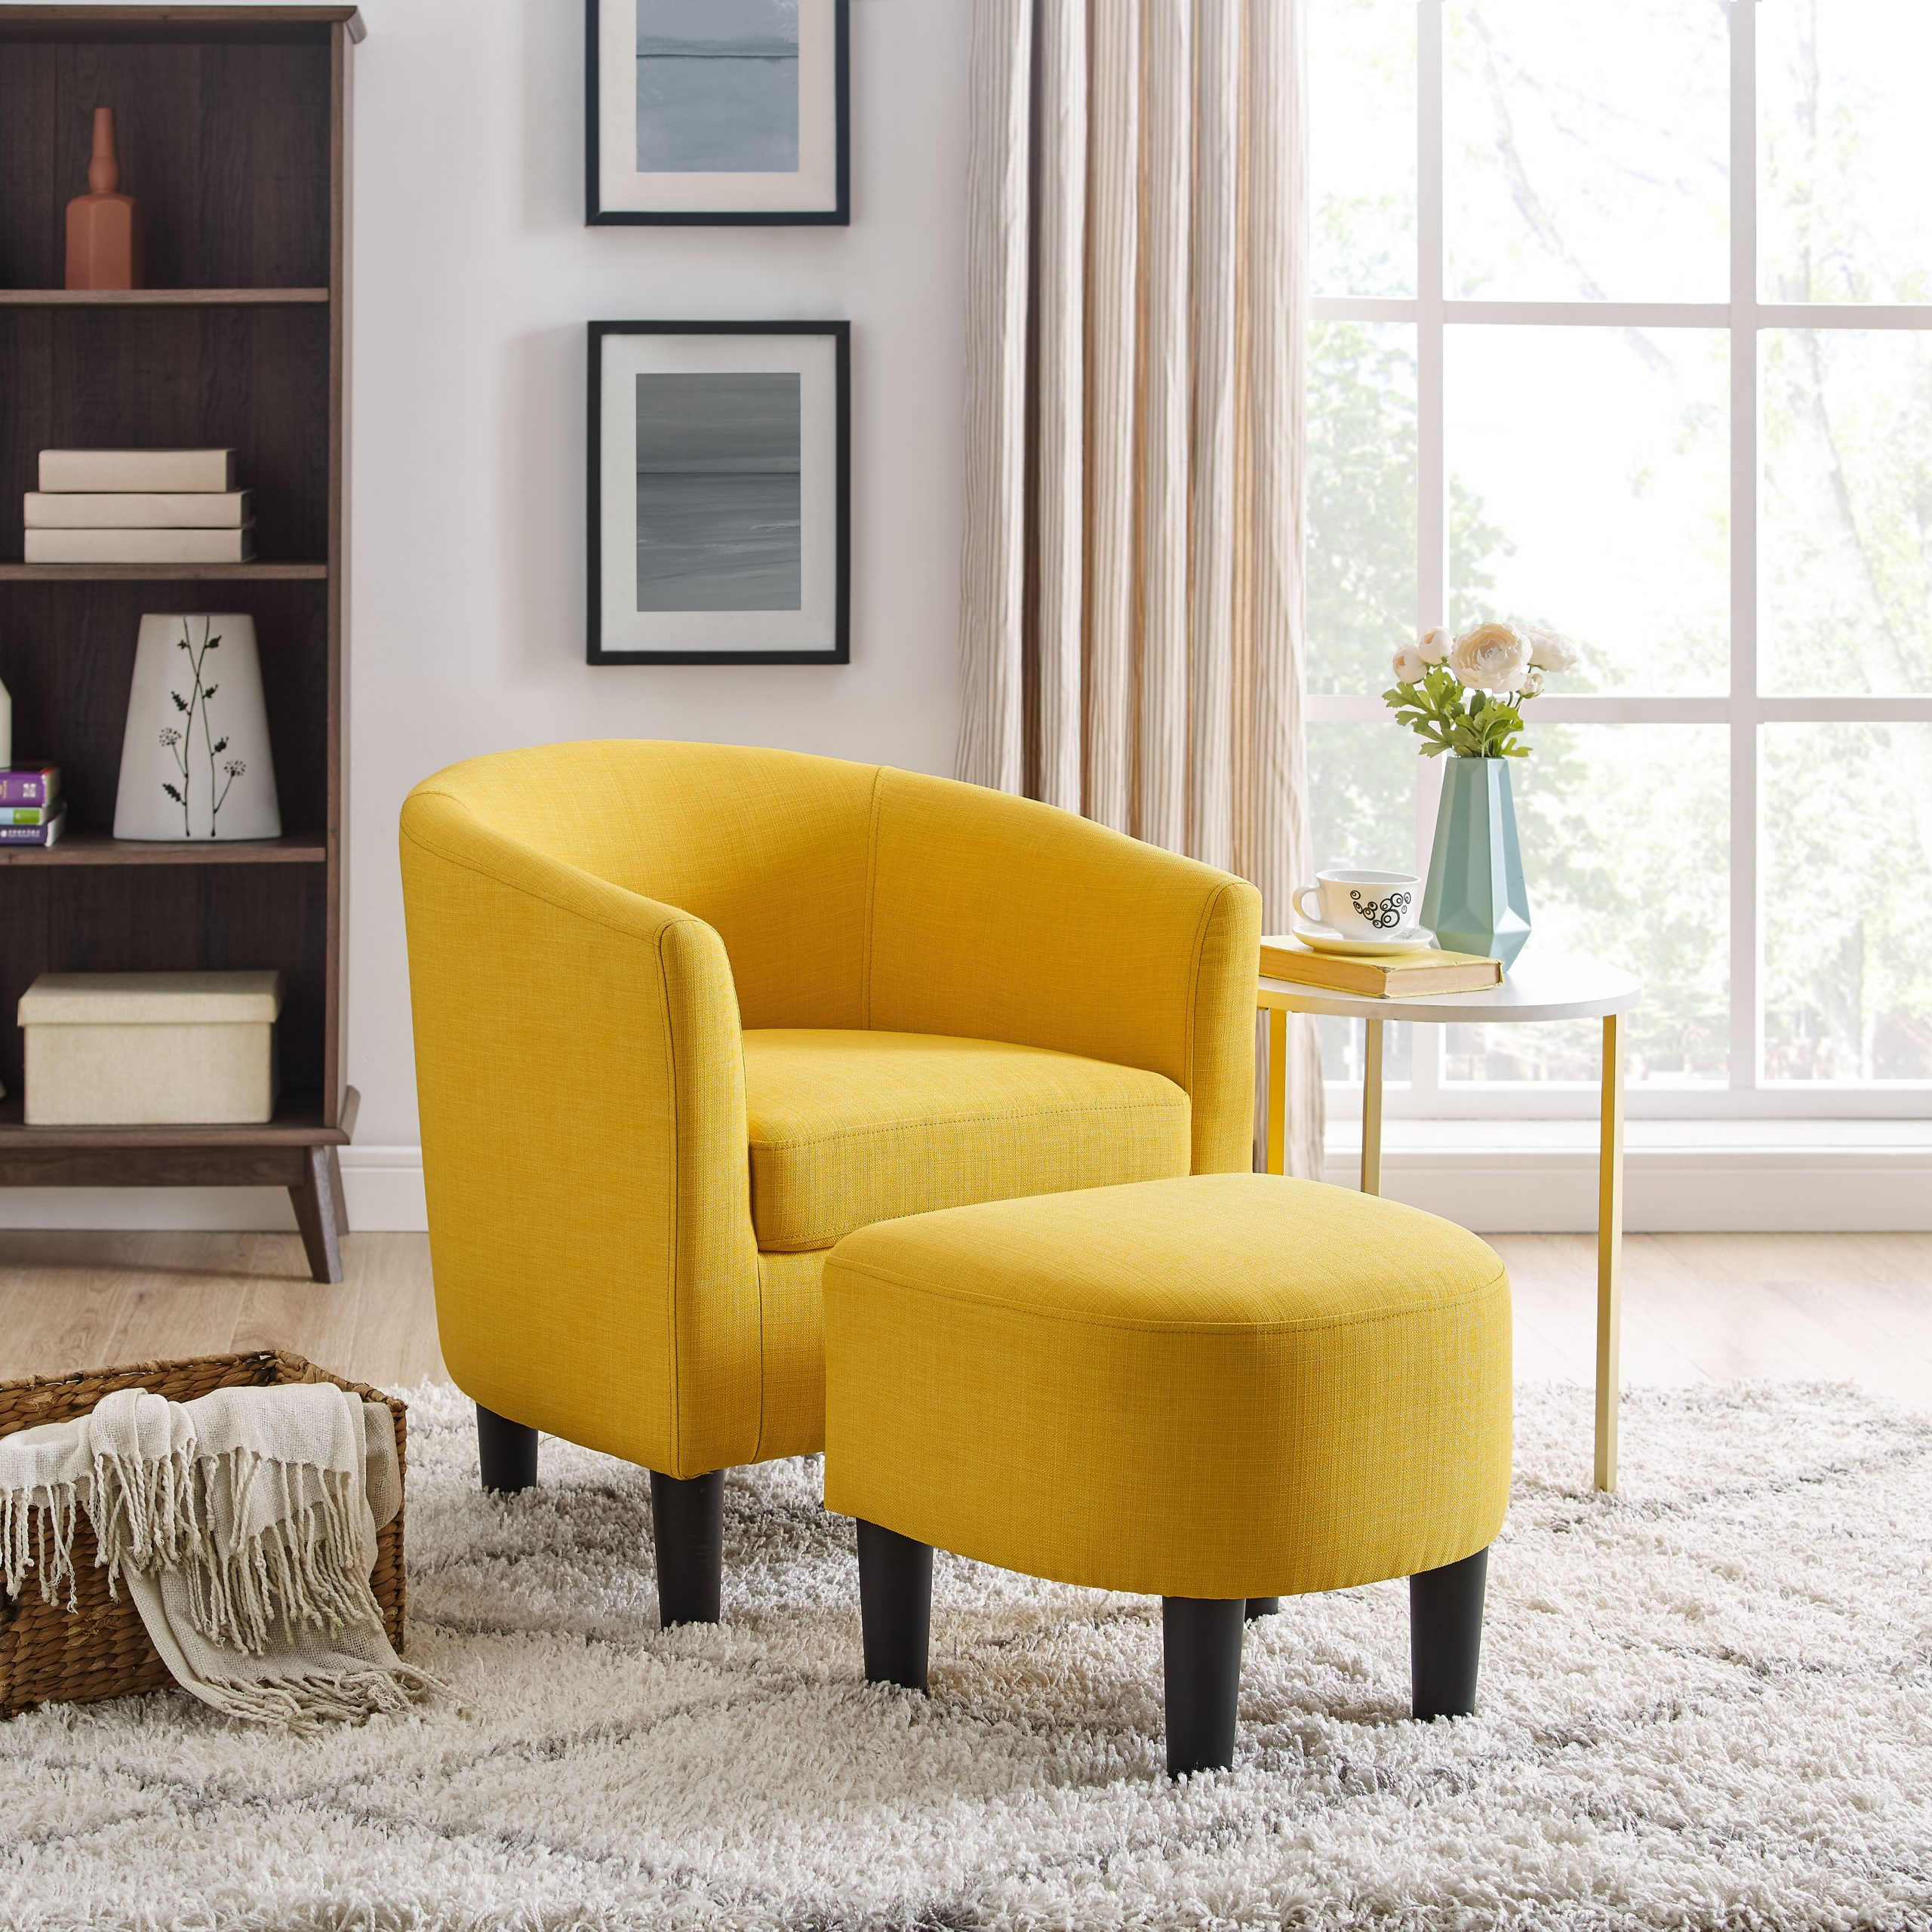 Orange & Yellow Accent Chairs You'Ll Love In 2021   Wayfair Regarding Artemi Barrel Chair And Ottoman Sets (View 7 of 15)